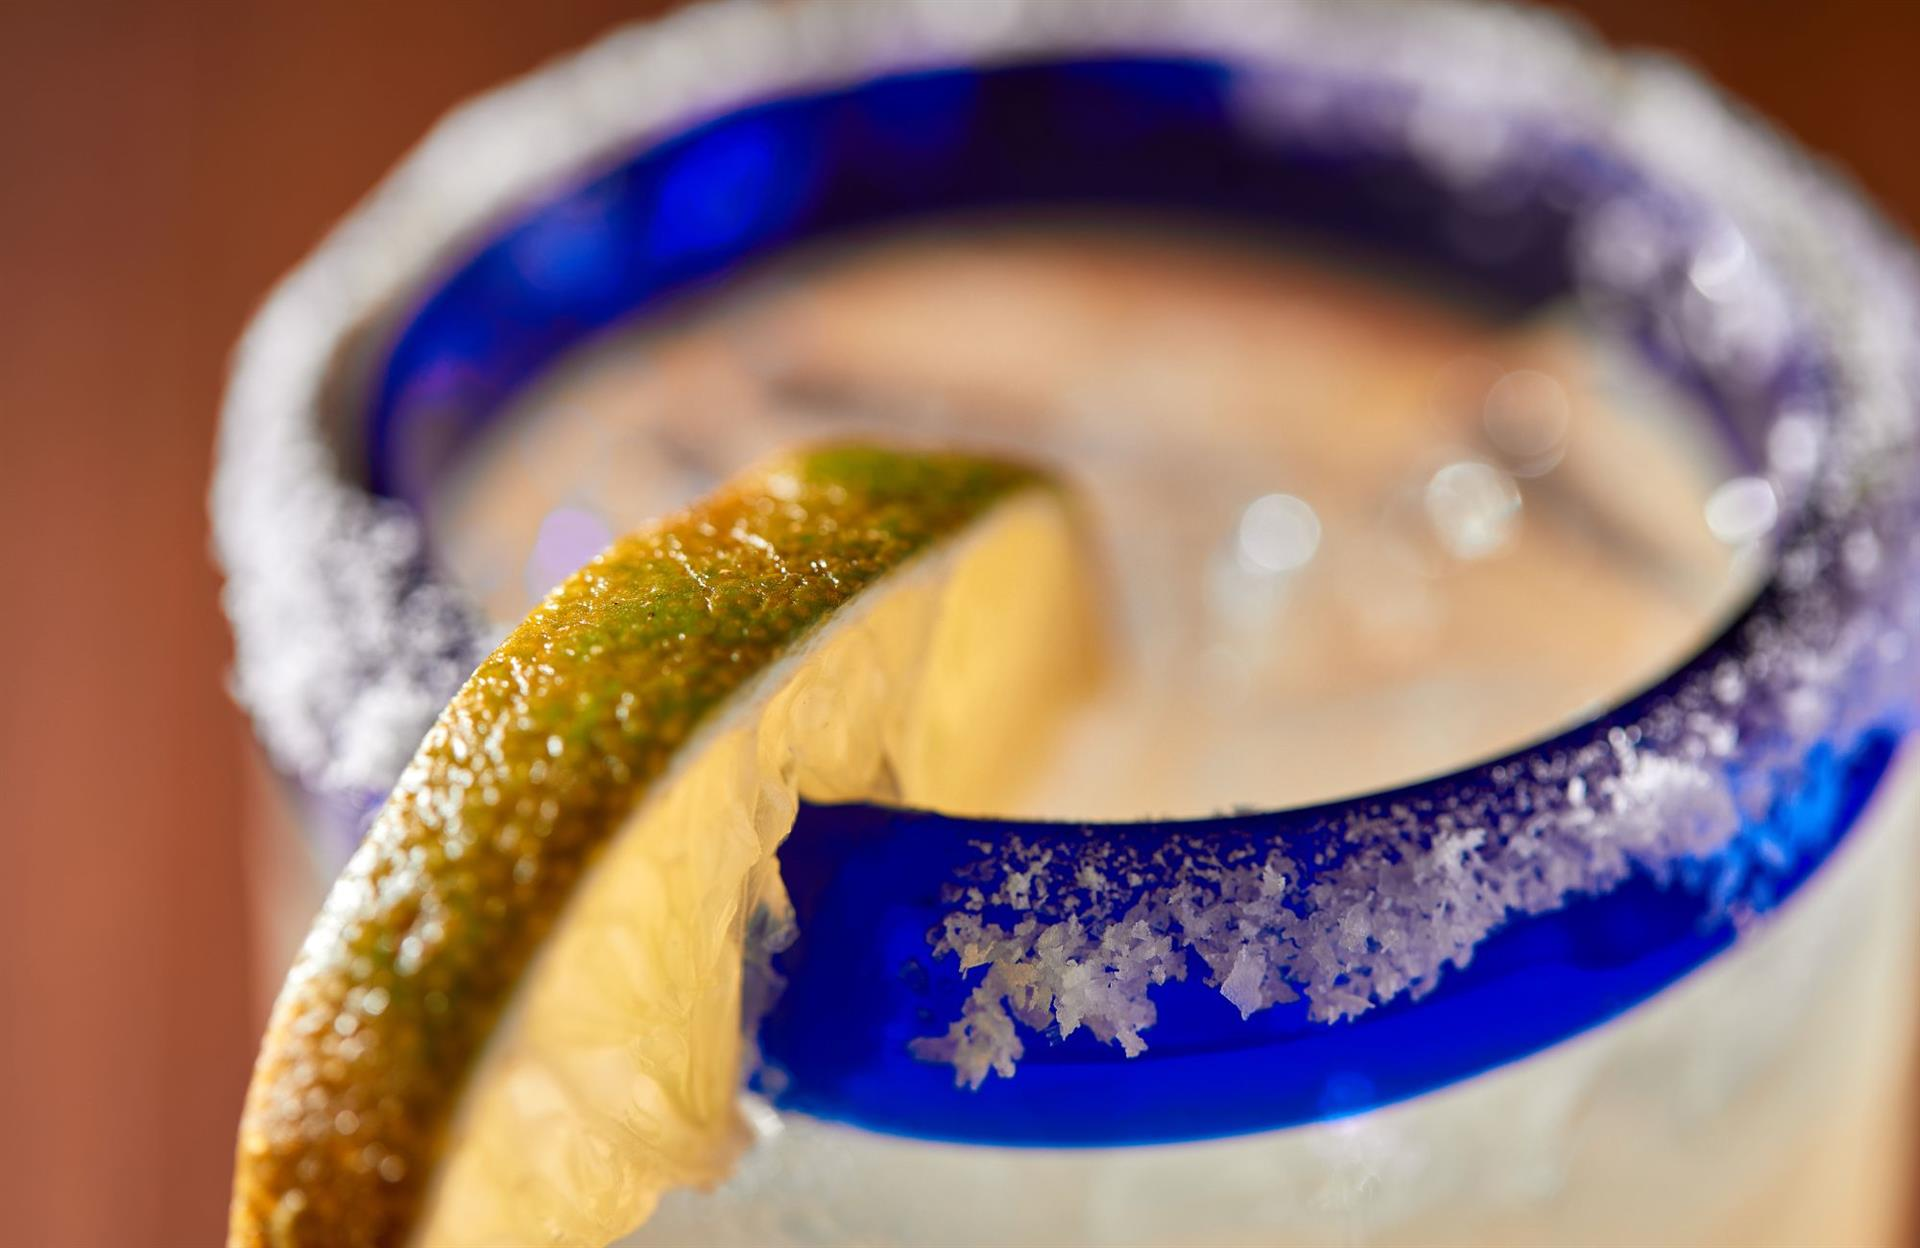 margarita on the rocks with a salt rim and a lime.